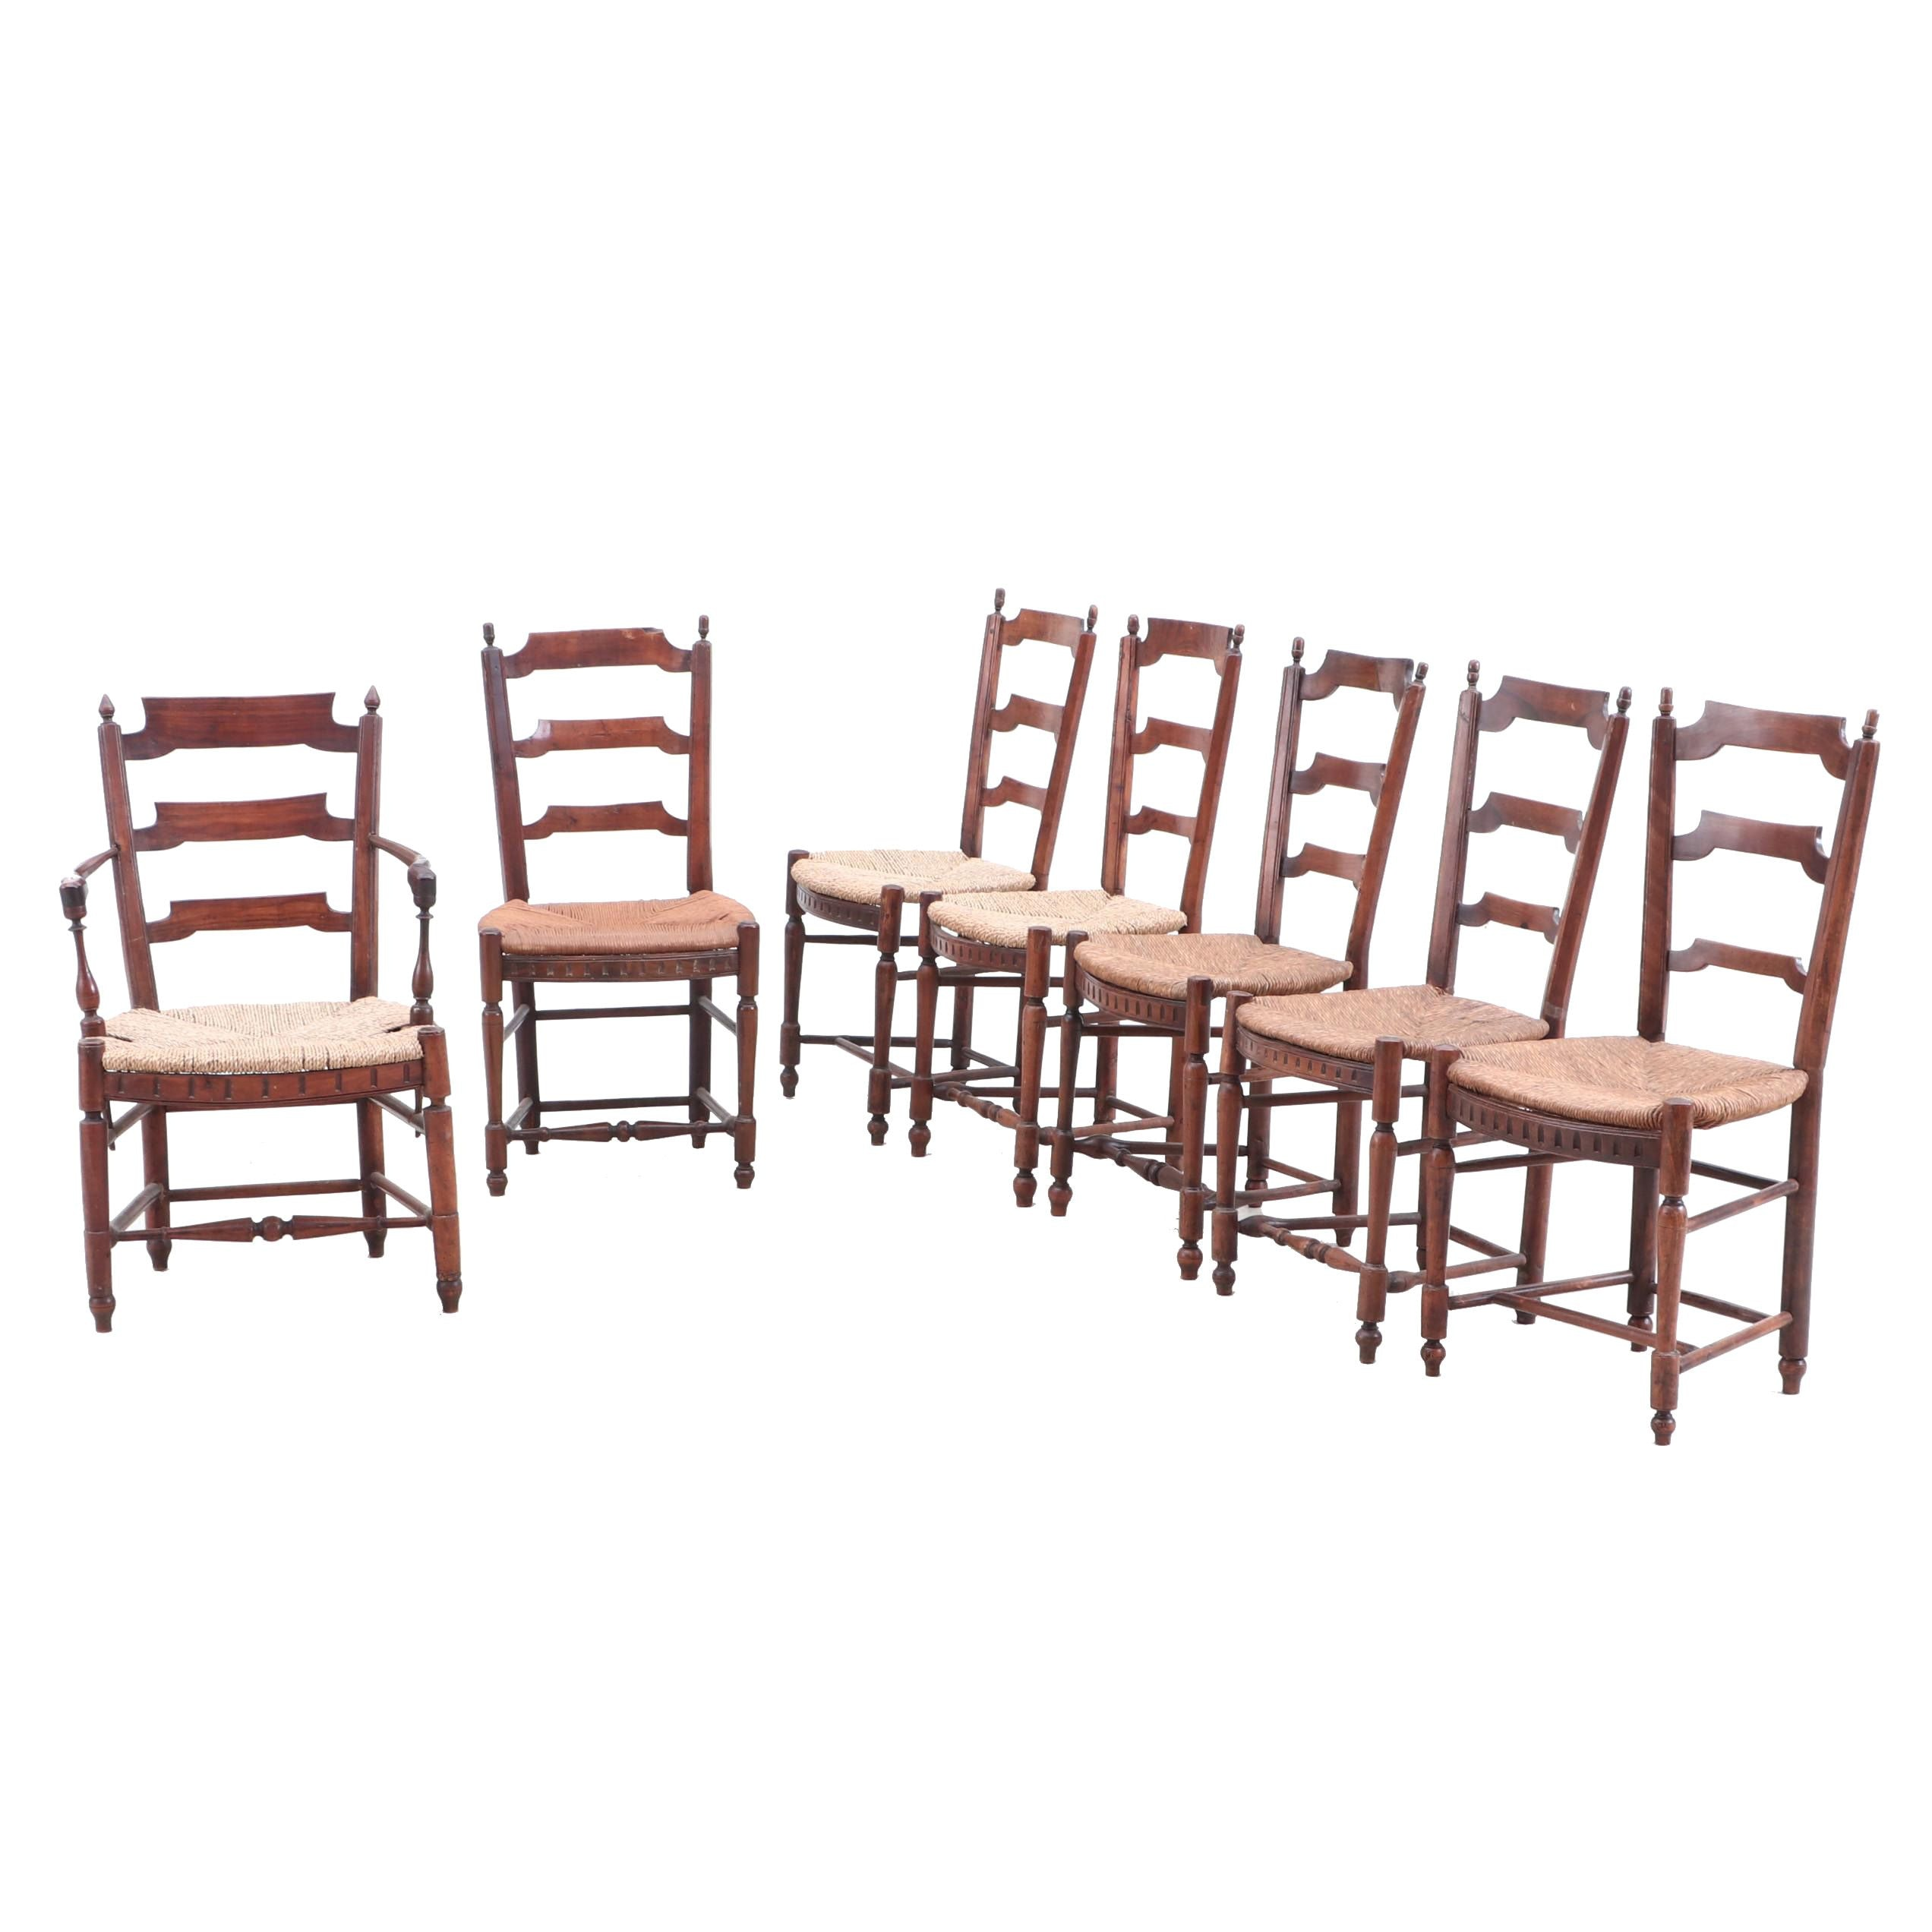 French Walnut Arm and Side Chairs with Rush Seats, 19th Century